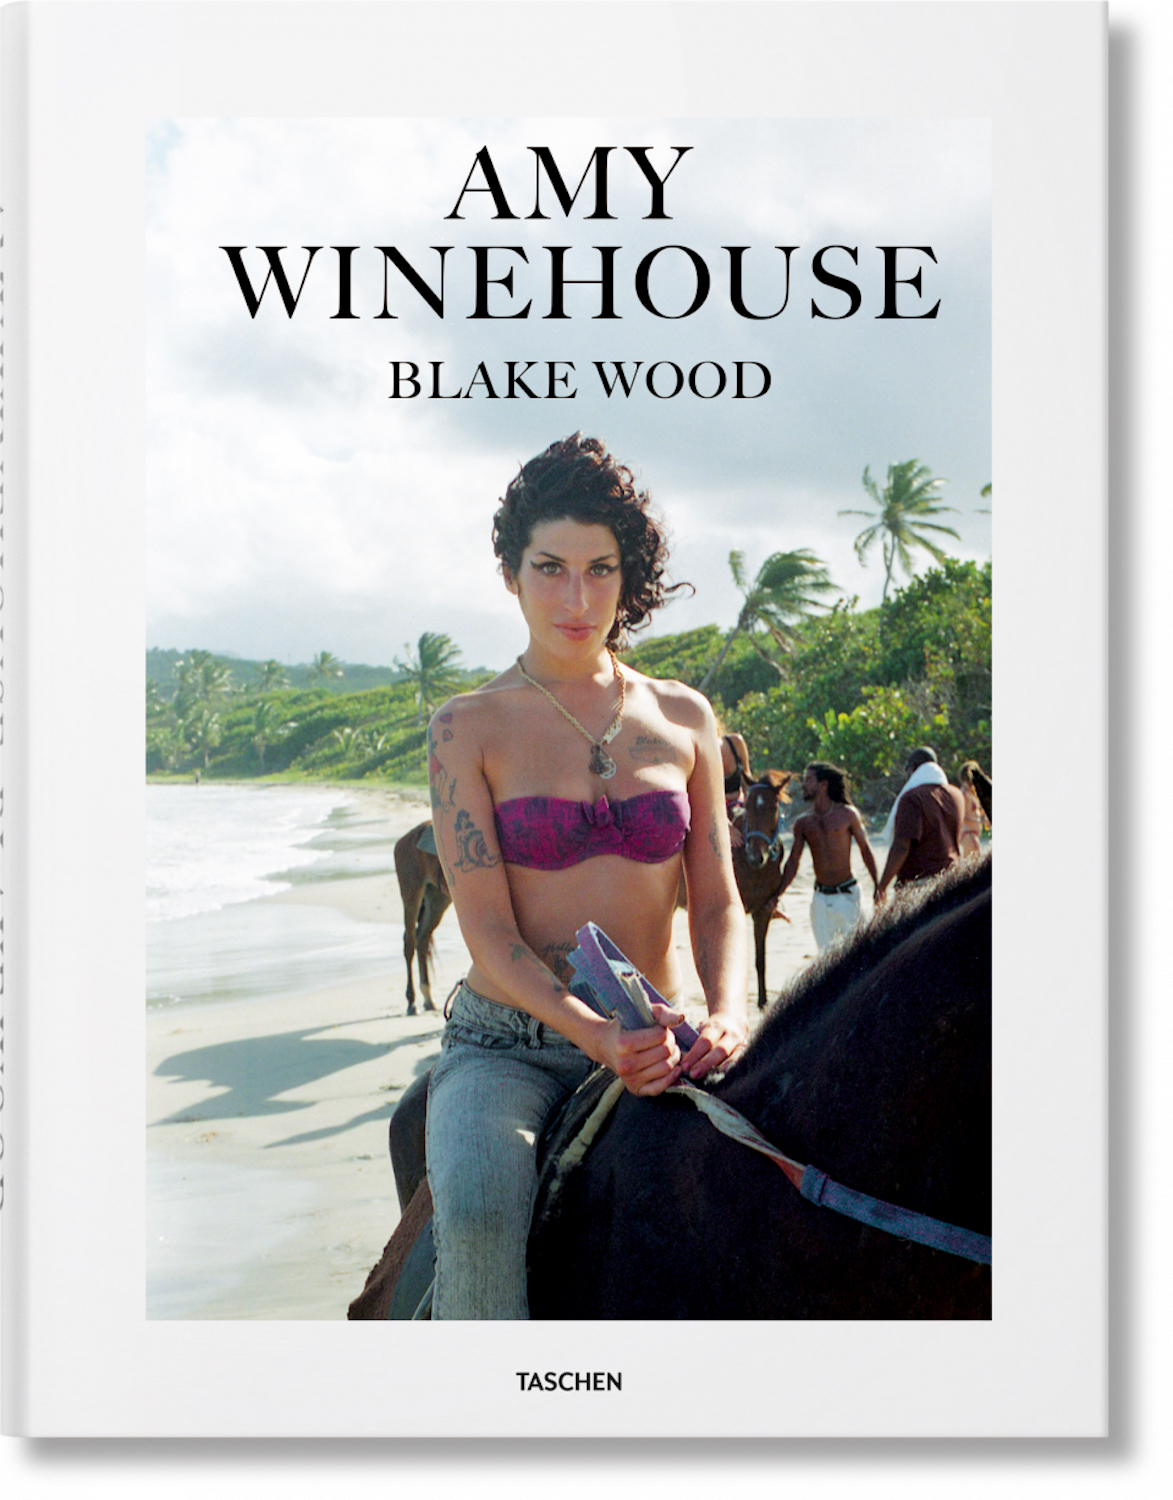 TASCHEN - invites you to meet photographer Blake Wood at a signing of his new bookAmy Winehouse.Blake WoodSunday December 2nd5 pmTASCHENFarmers Market, 6333 W. 3rd Street, CT-10Los Angeles, CA 90036